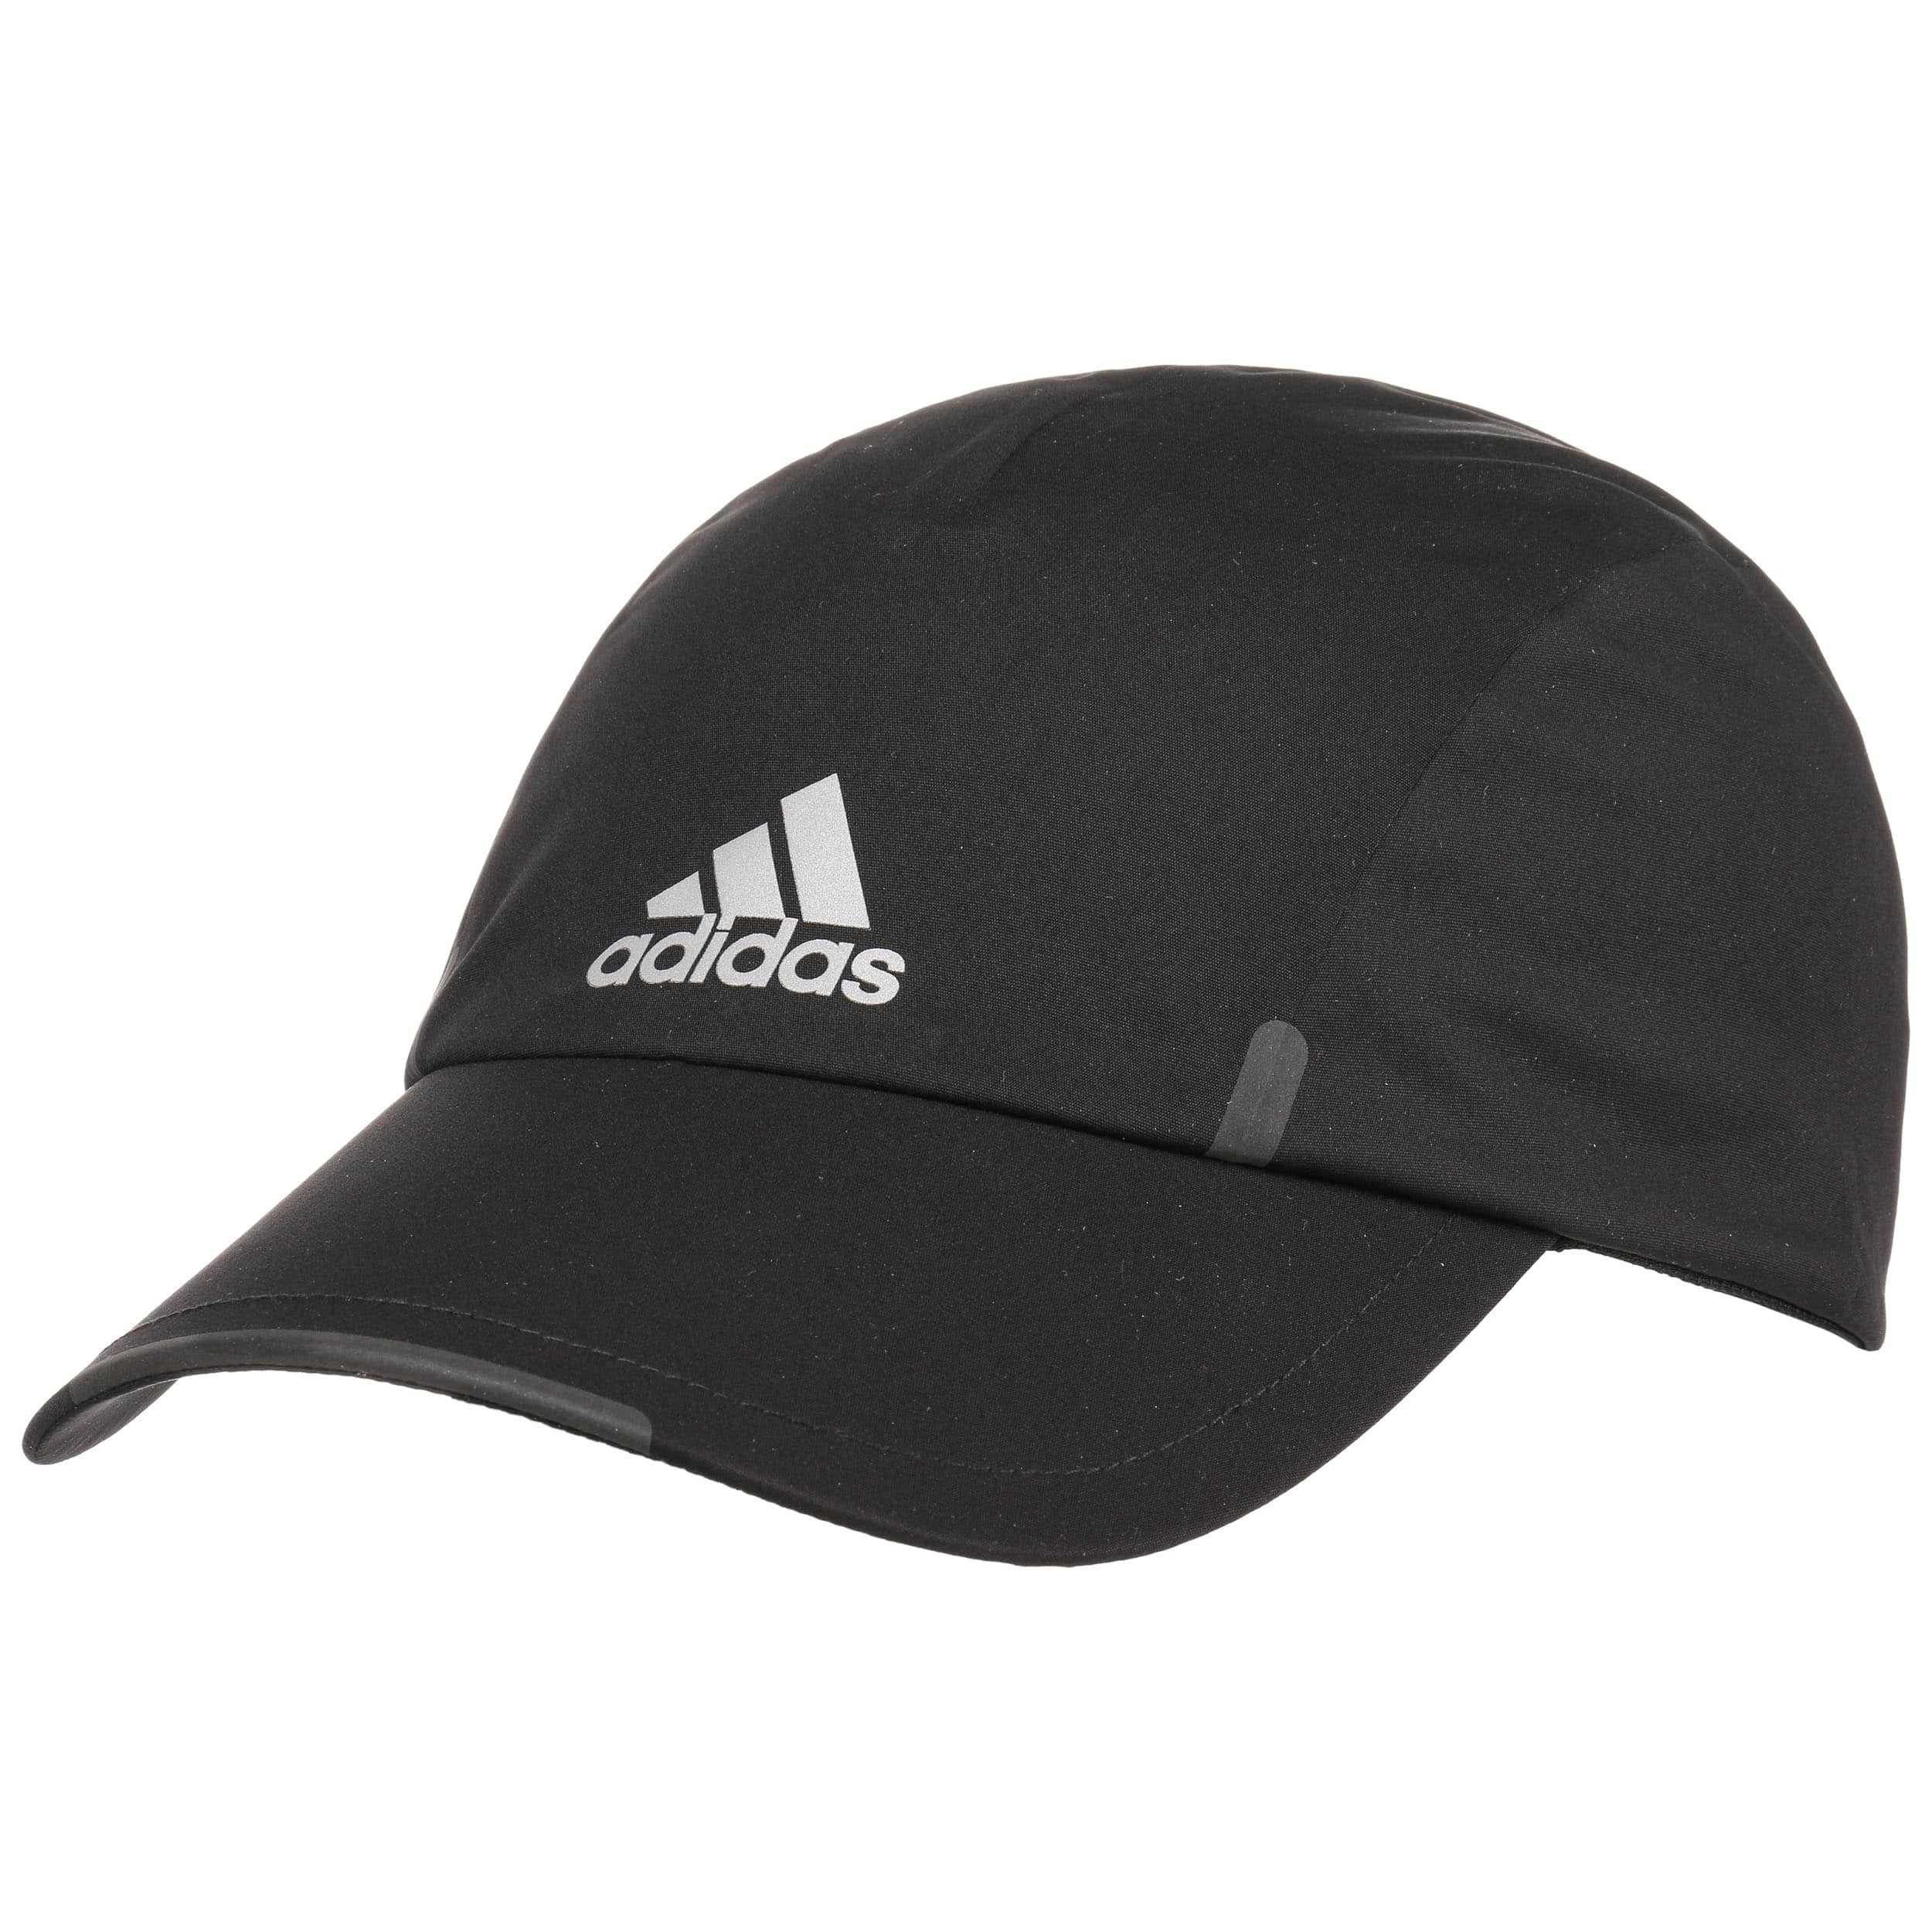 By Casquette Climaproof Climaproof Adidas Casquette Running IZ8PZxwvq